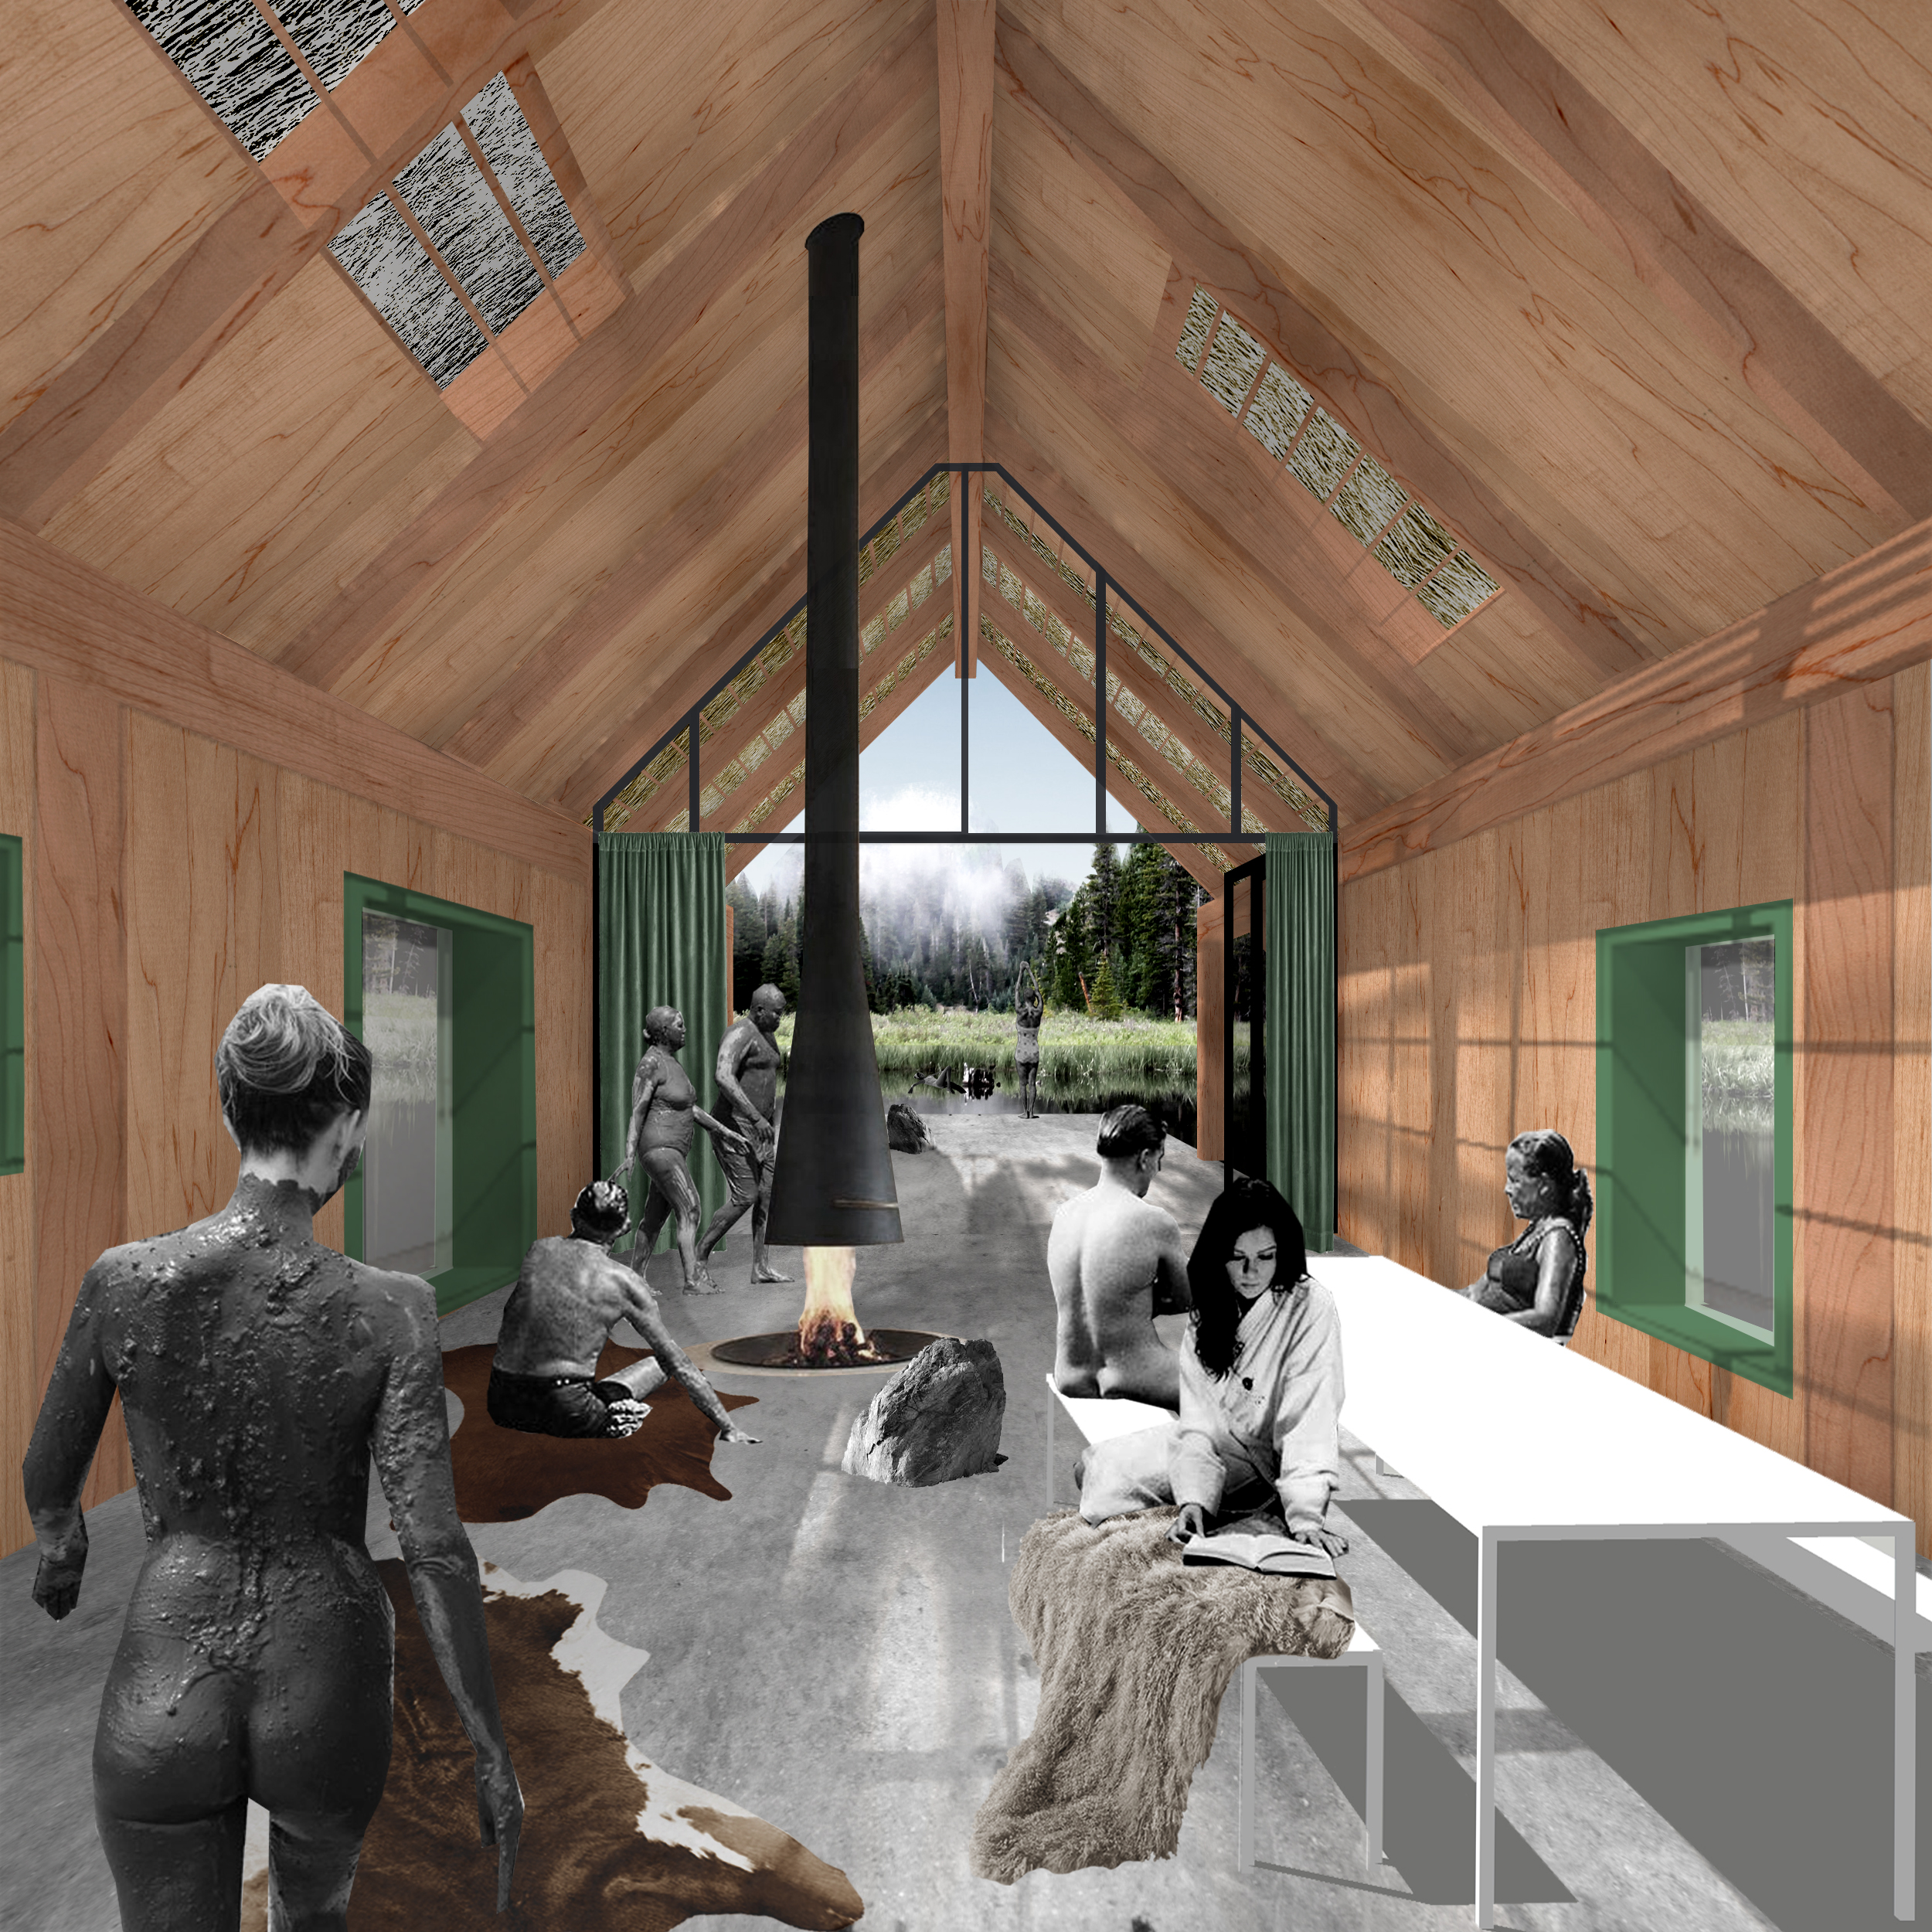 12-Guest House - View of Living Space.jpg